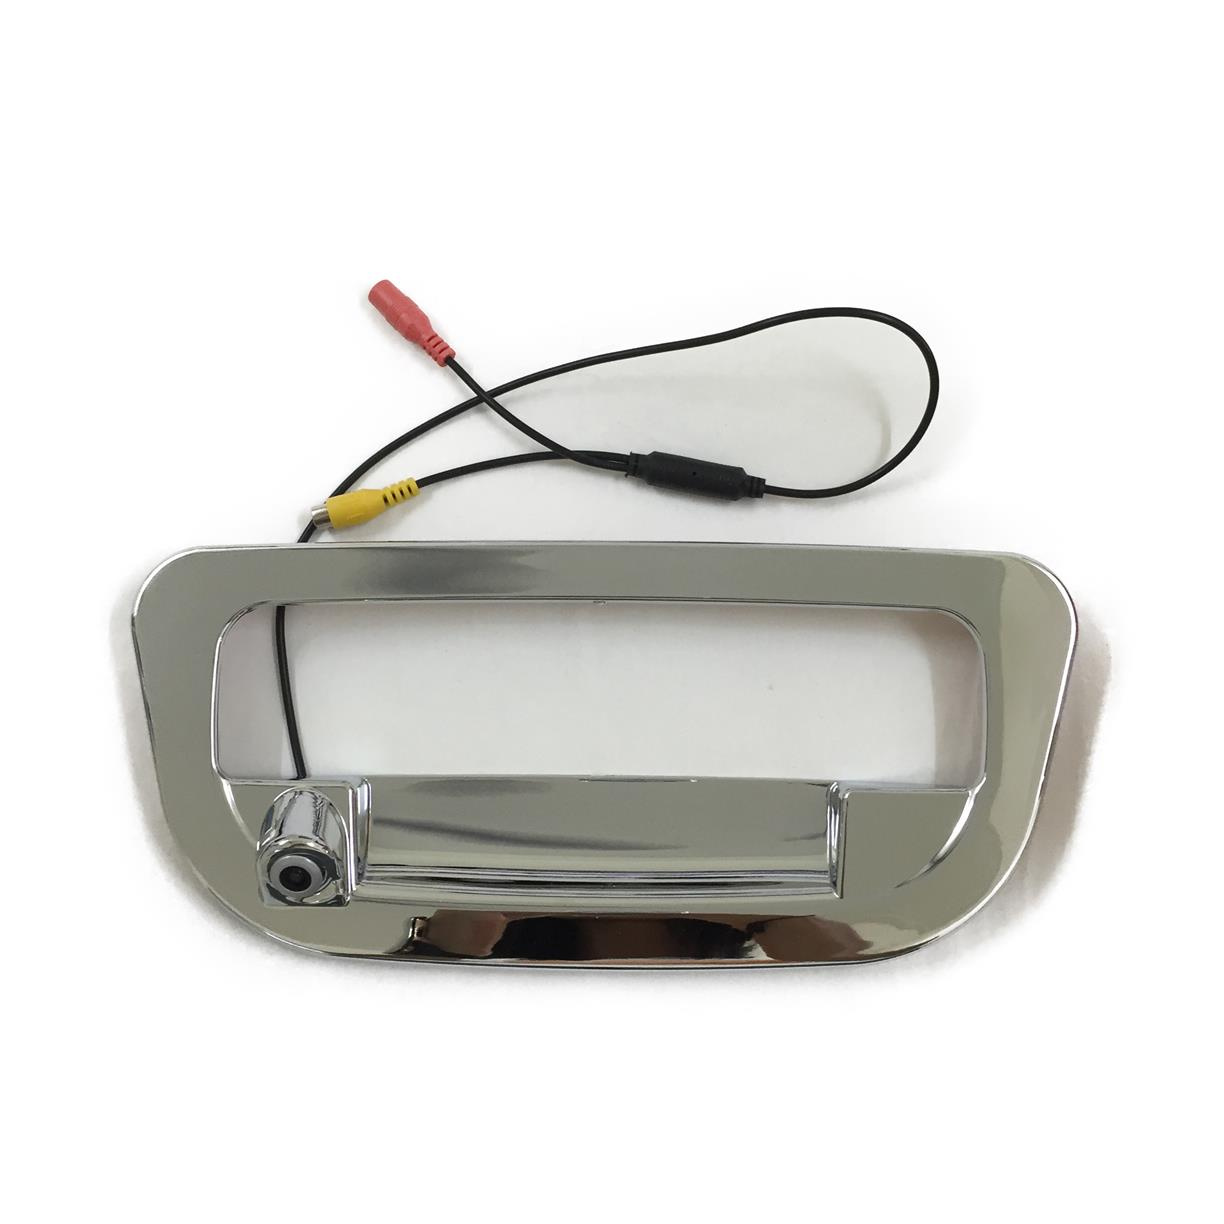 Built-in rear view camera tailgate cover